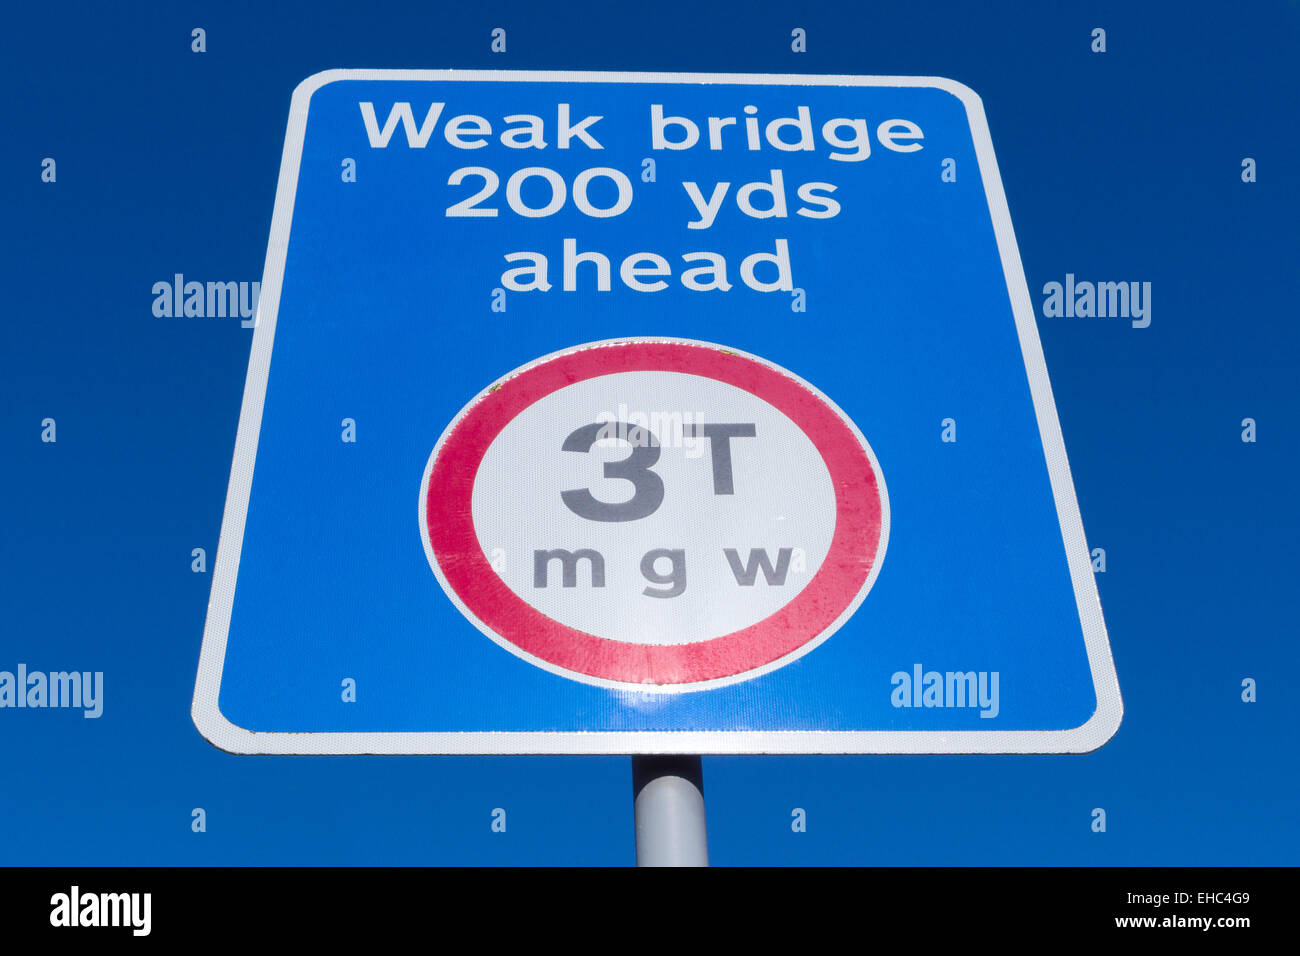 Road Sign Showing Maximum Three Tonne Gross Weight for Vehicles Crossing a Weak Bridge, UK - Stock Image